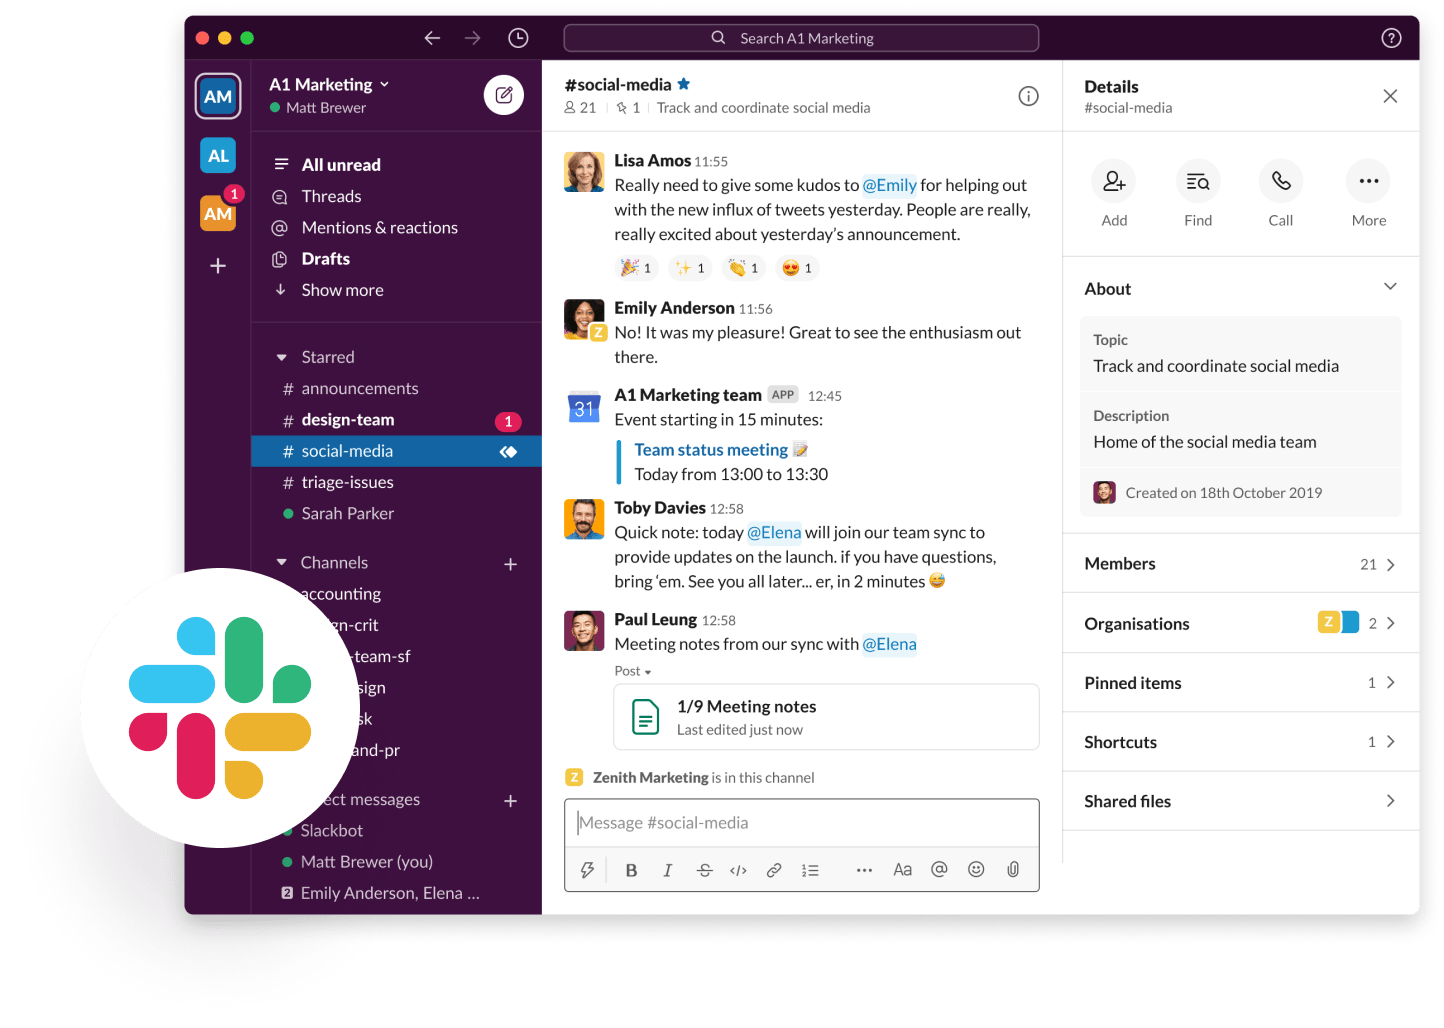 A picture of a Slack interface. Cloverly for Slack can help offset carbon emissions through this integration.